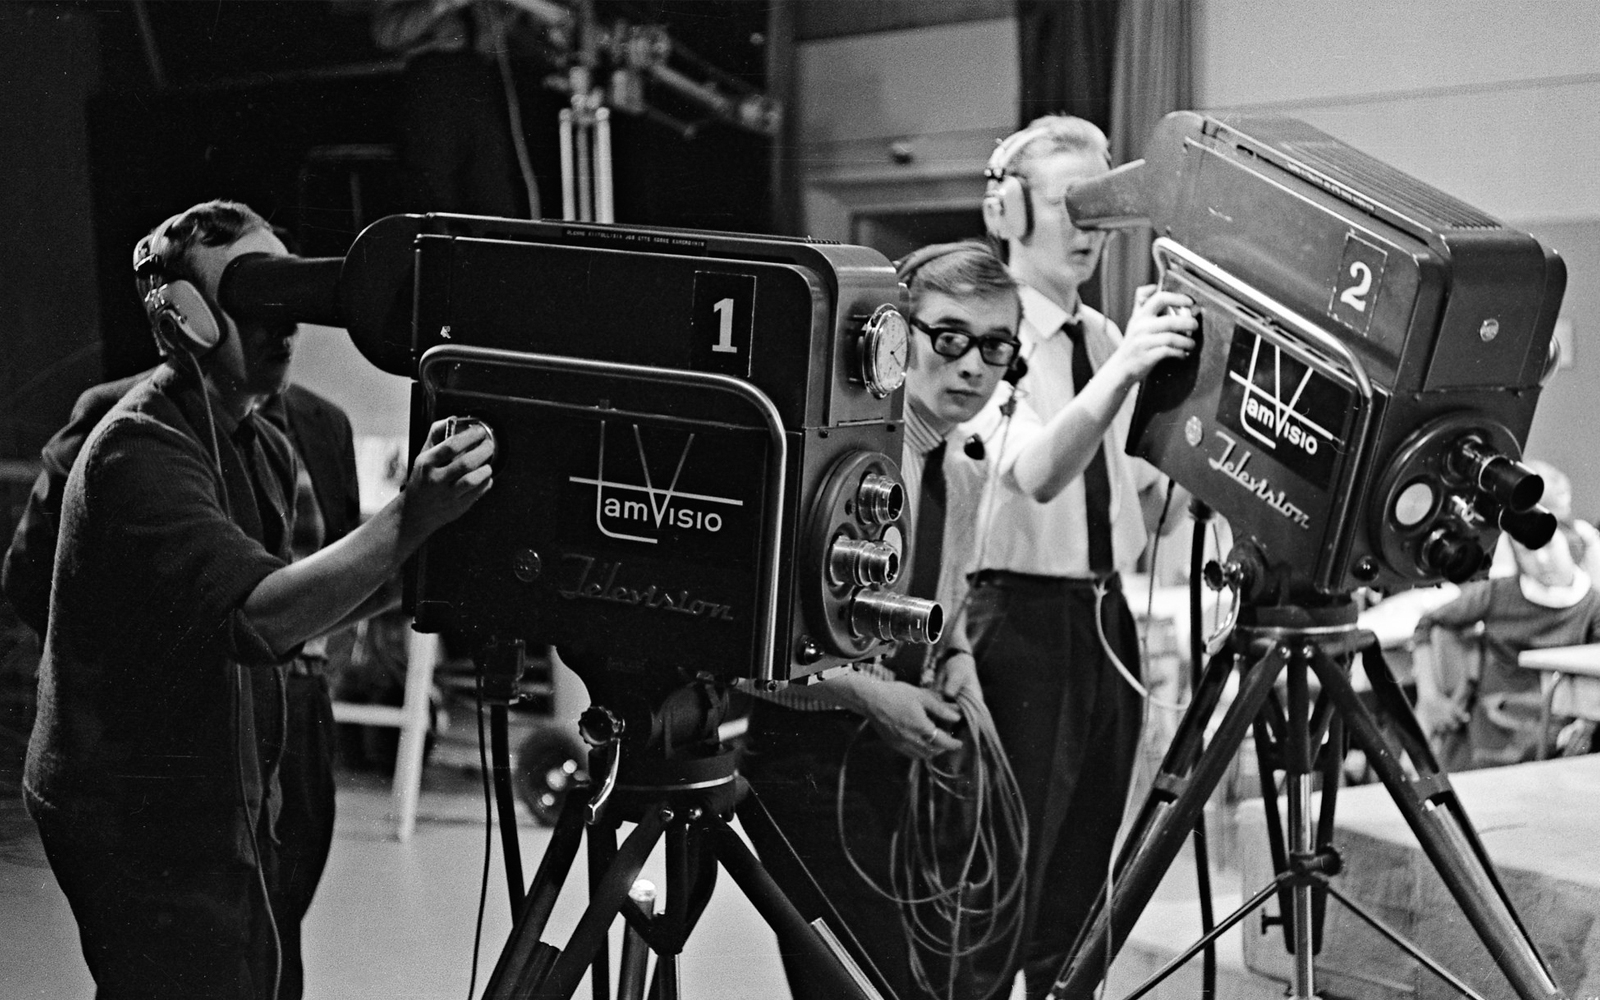 Camera operators from 1950s using three lens cameras